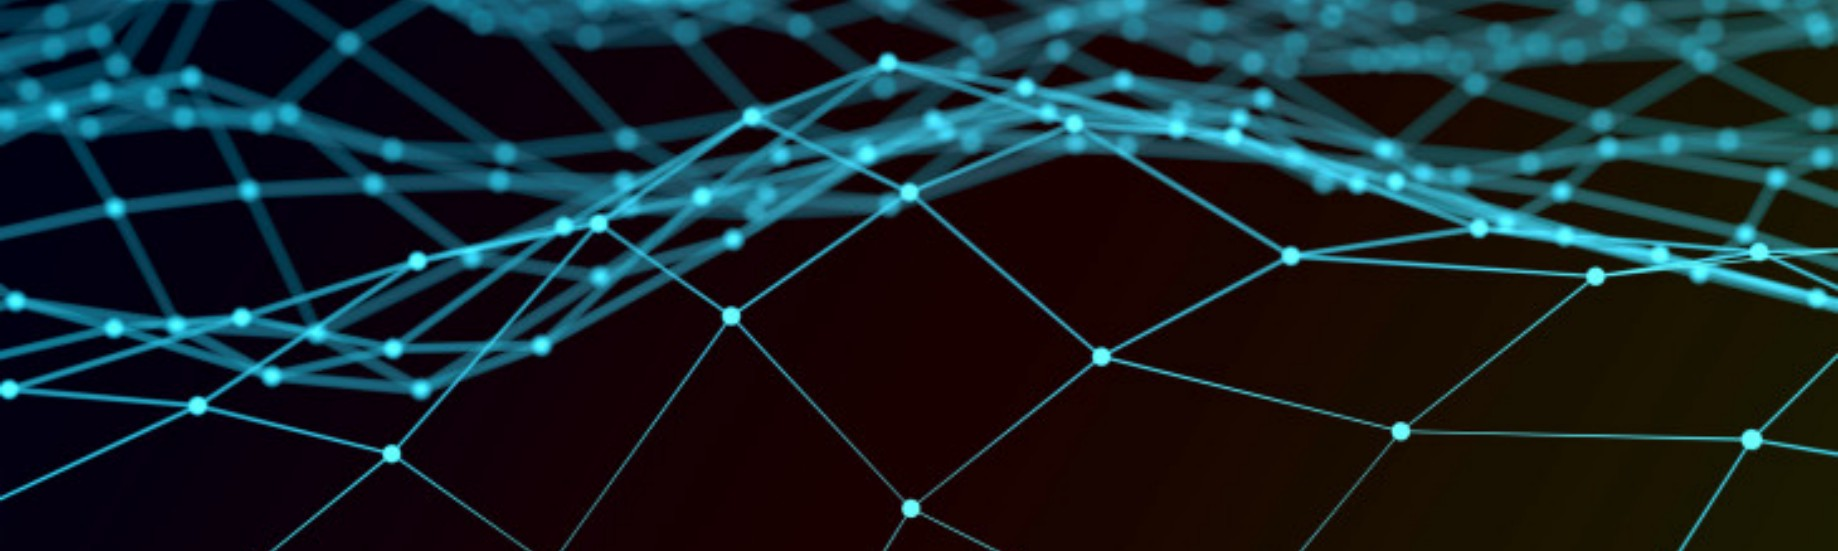 Neural Networks to Predict the Market - Towards Data Science